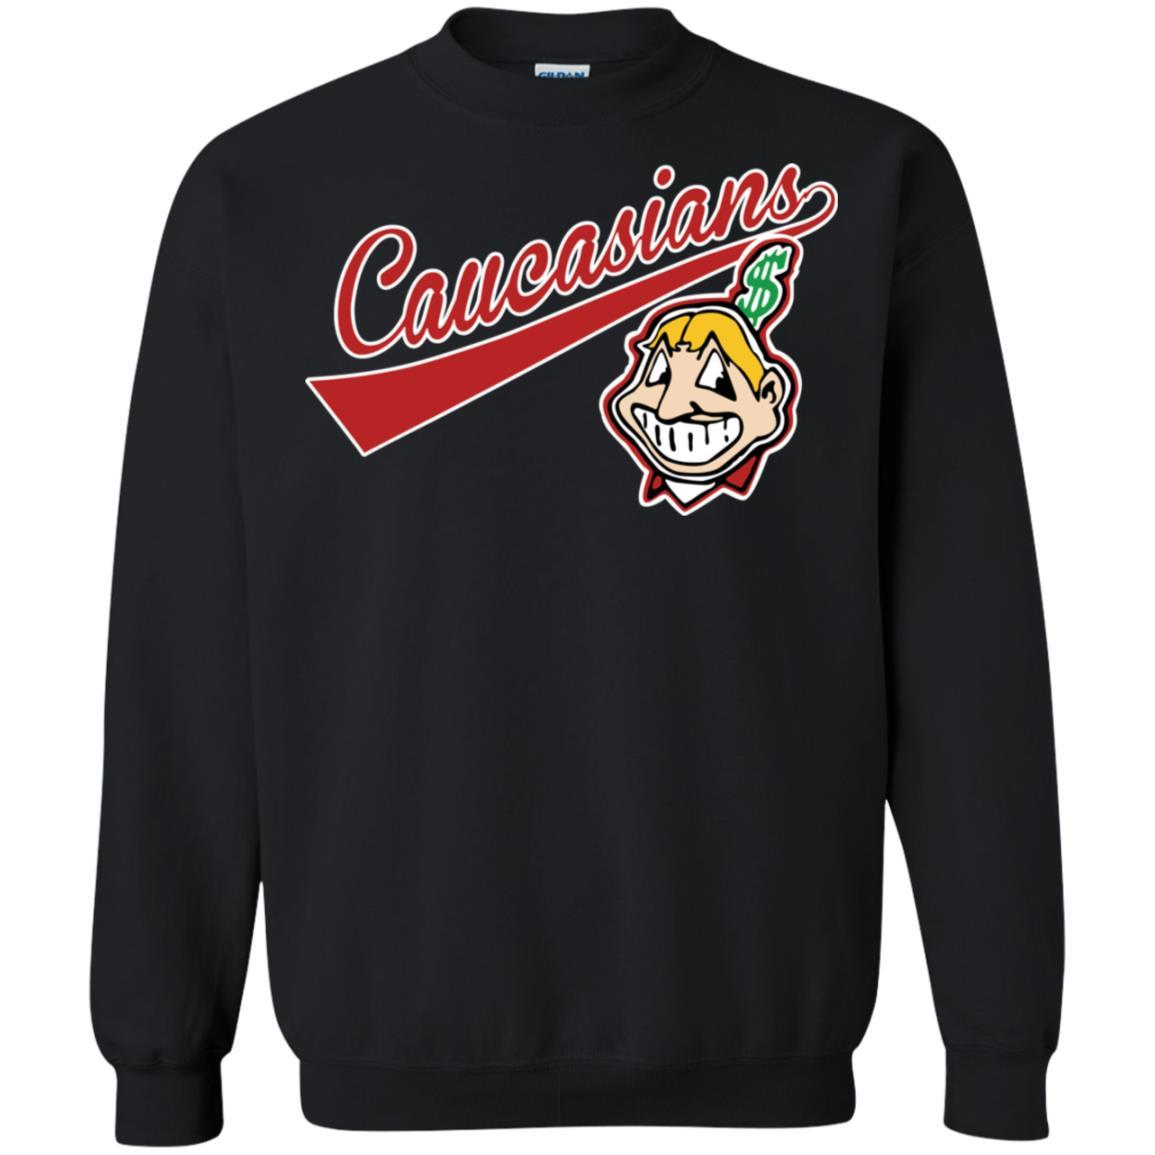 Cleveland Caucasians Native Go Indians - Pullover Sweatshirt Black / 5XL